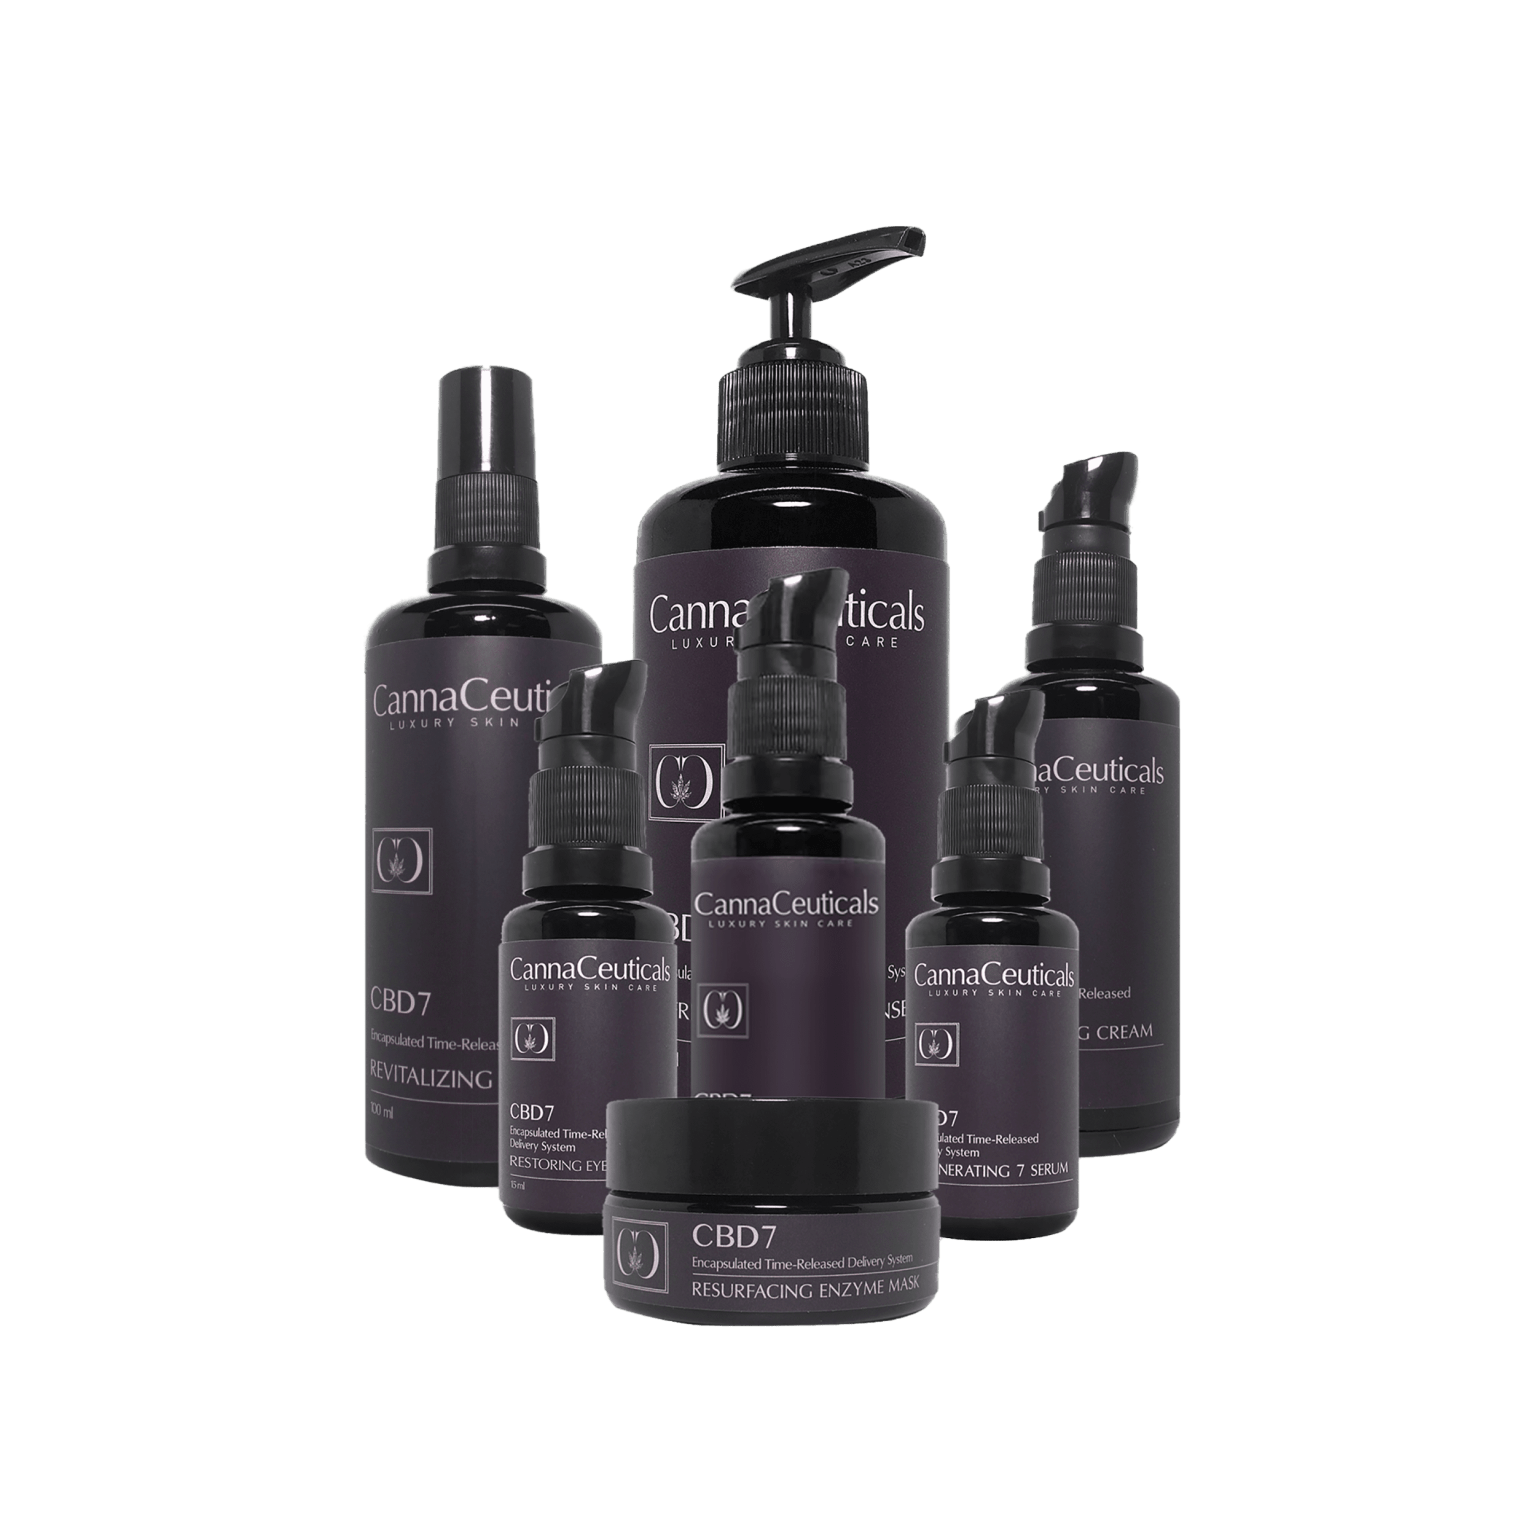 CannaCeuticals Luxury Skin Care System